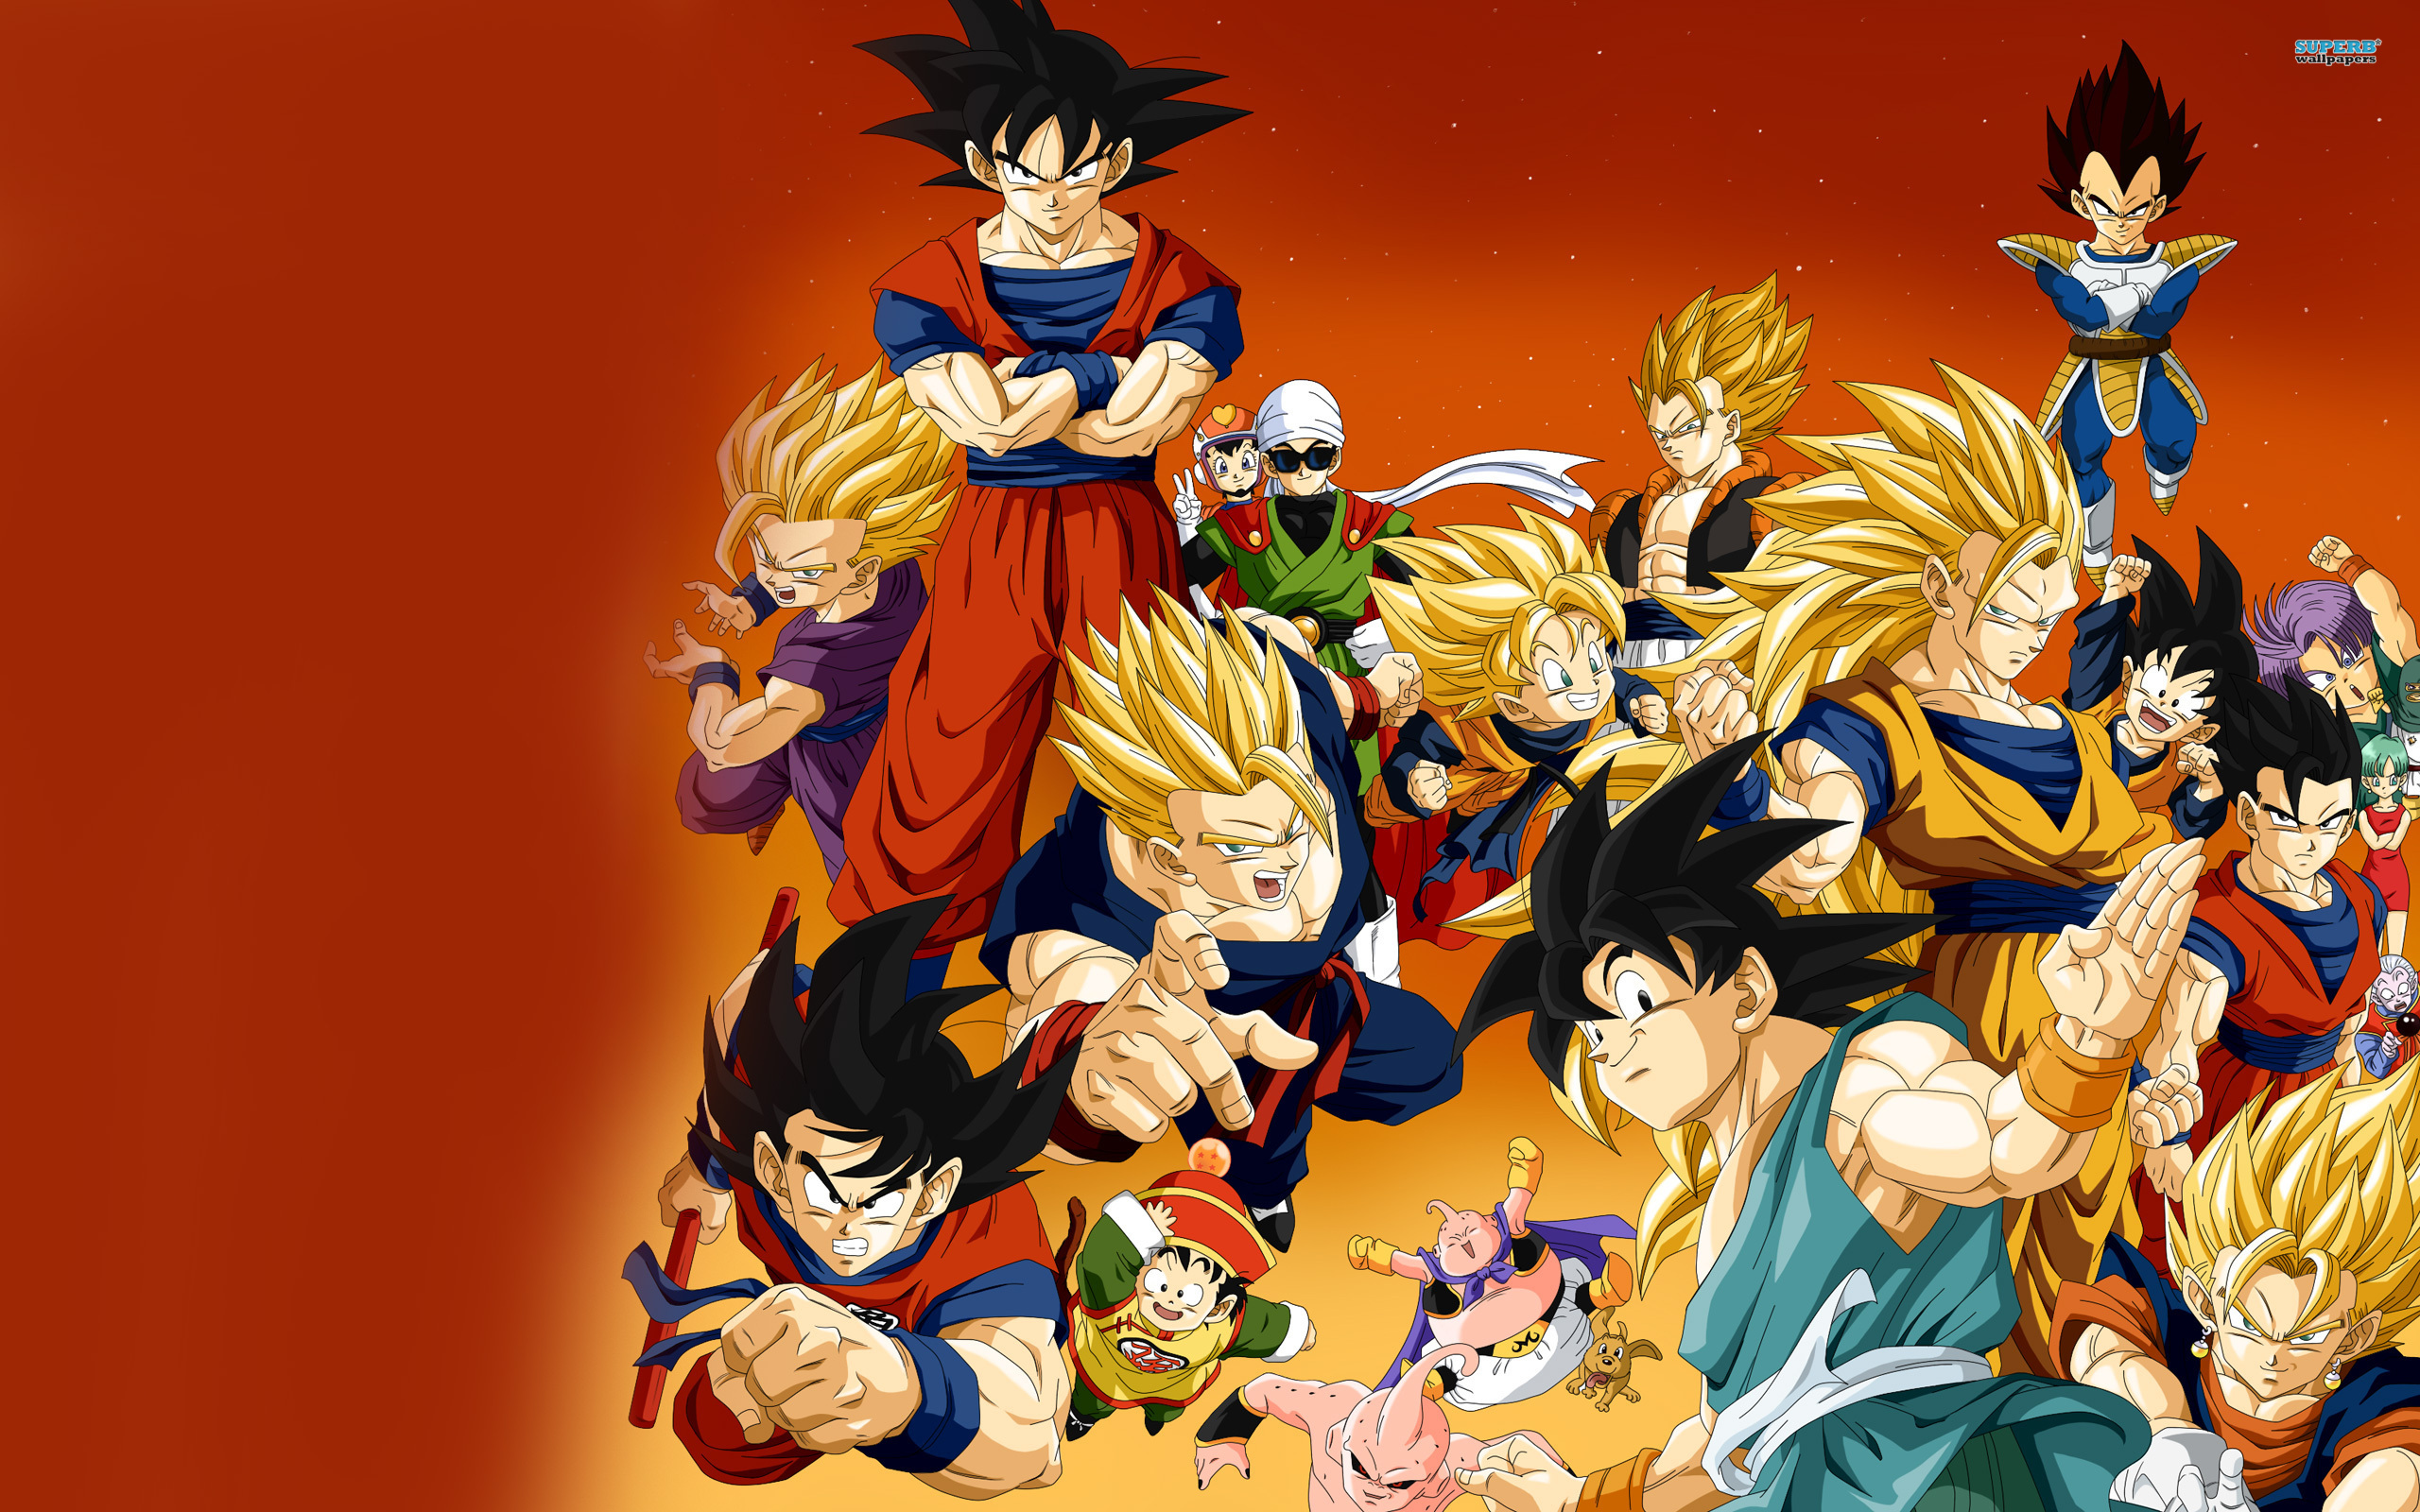 Dragon ball z wallpapers goku pixelstalk net - Dragon ball z gohan images ...